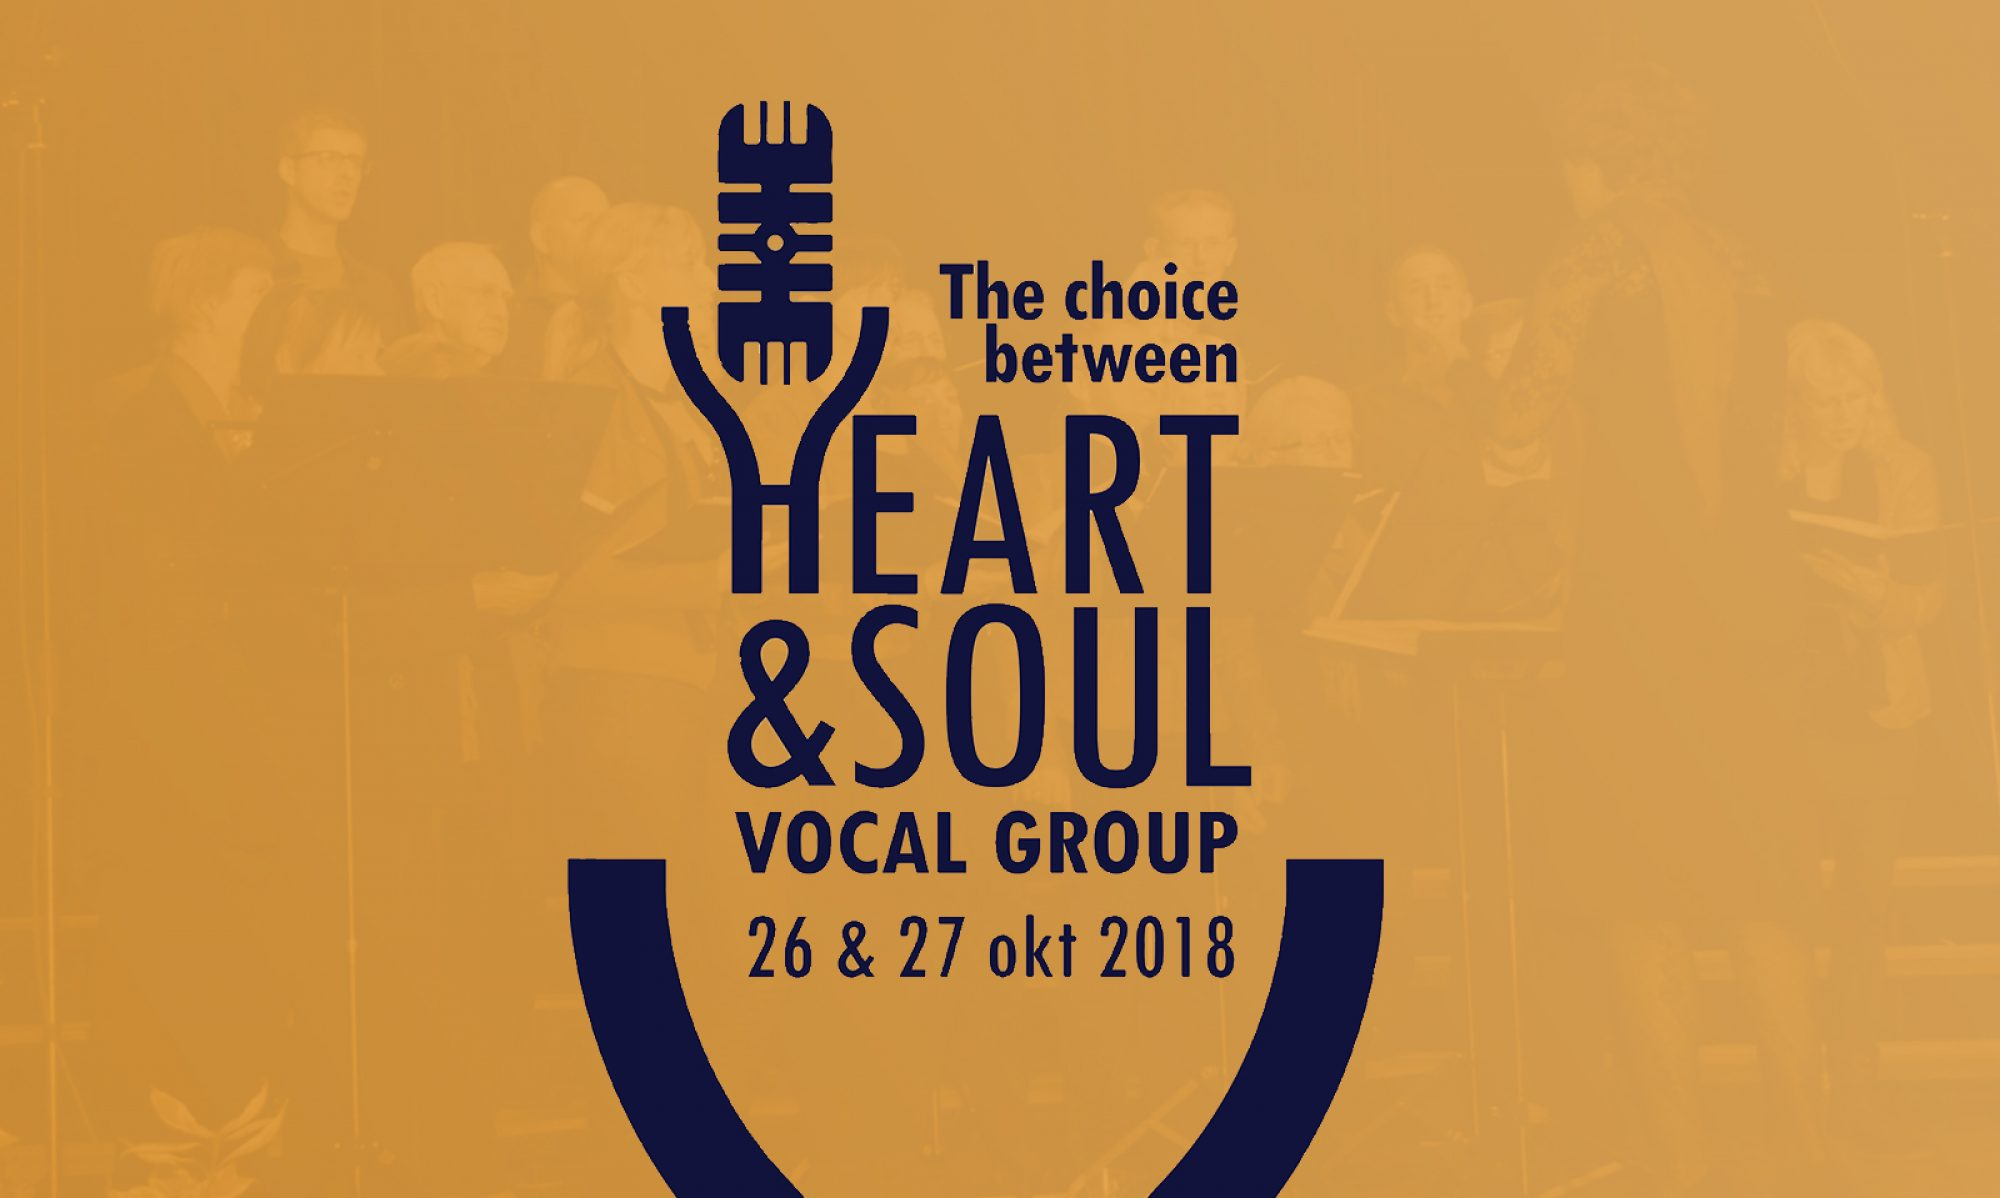 HEART & SOUL VOCAL GROUP